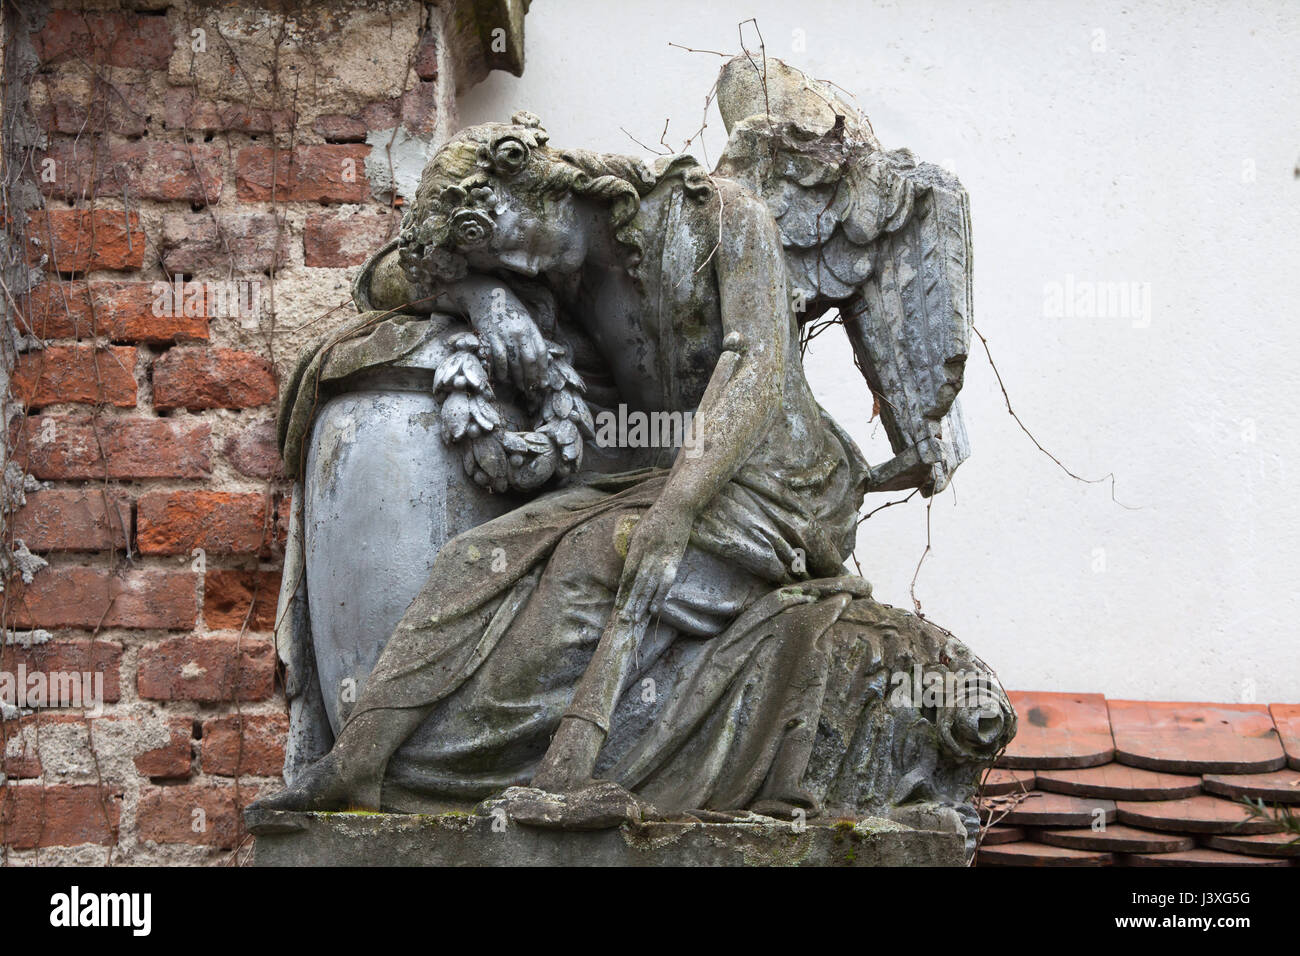 Statue of a mourning angel on an abandoned grave at the Central Cemetery in Brno, Czech Republic. - Stock Image